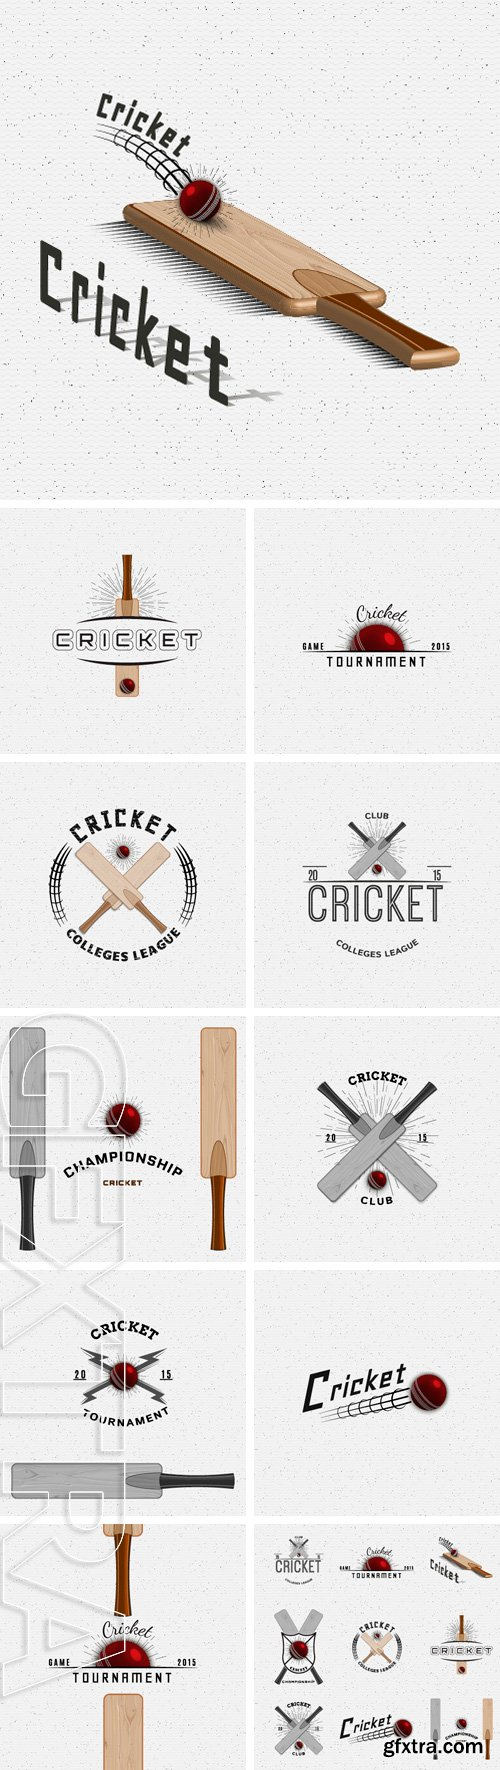 Stock Vectors - Cricket badges logos and labels can be used for design, presentations, brochures, flyers, sports equipment, corporate identity, sales